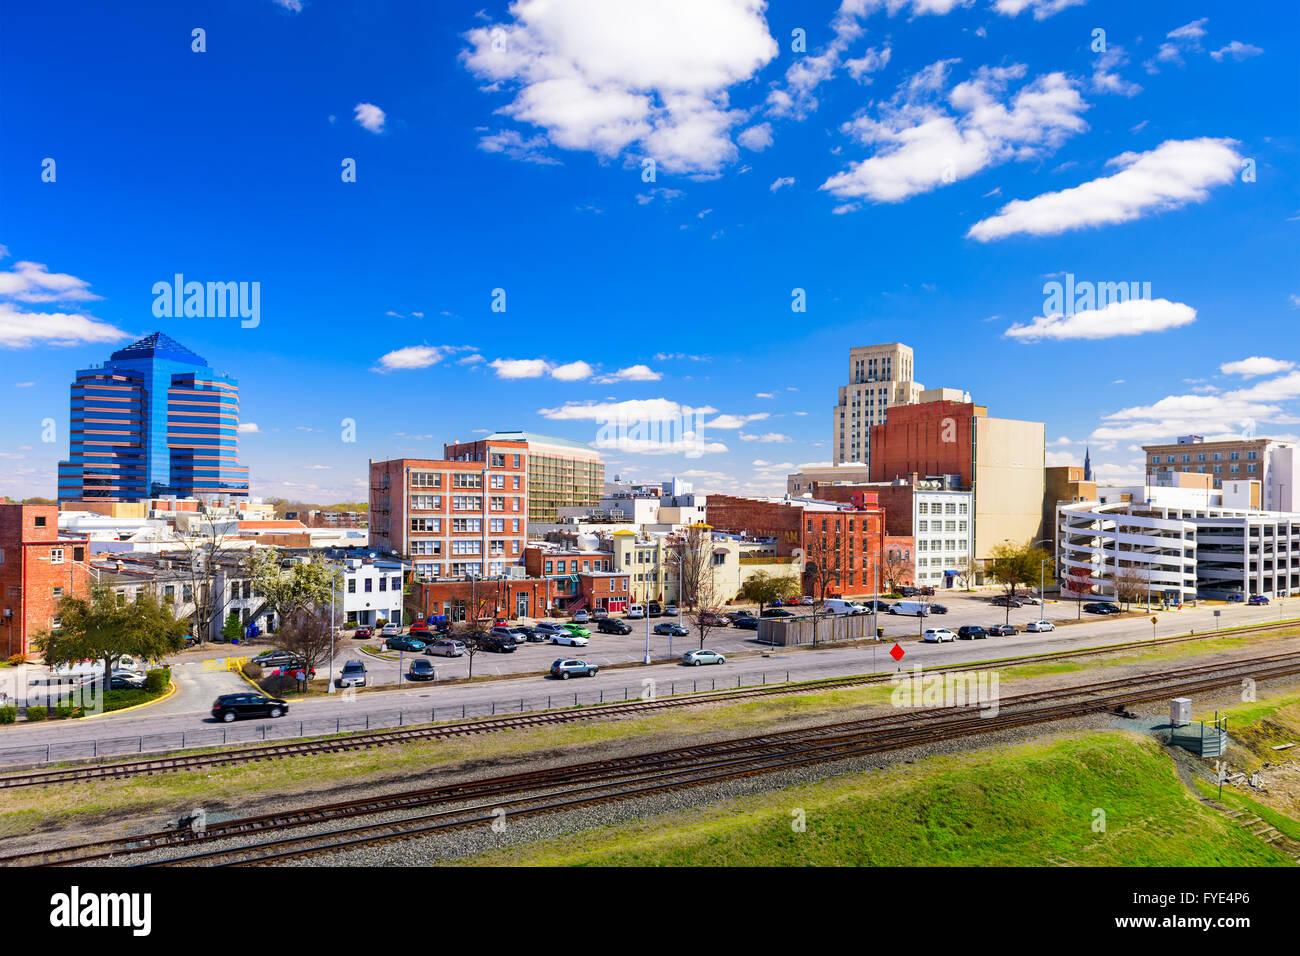 Durham, North Carolina, USA downtown cityscape. - Stock Image